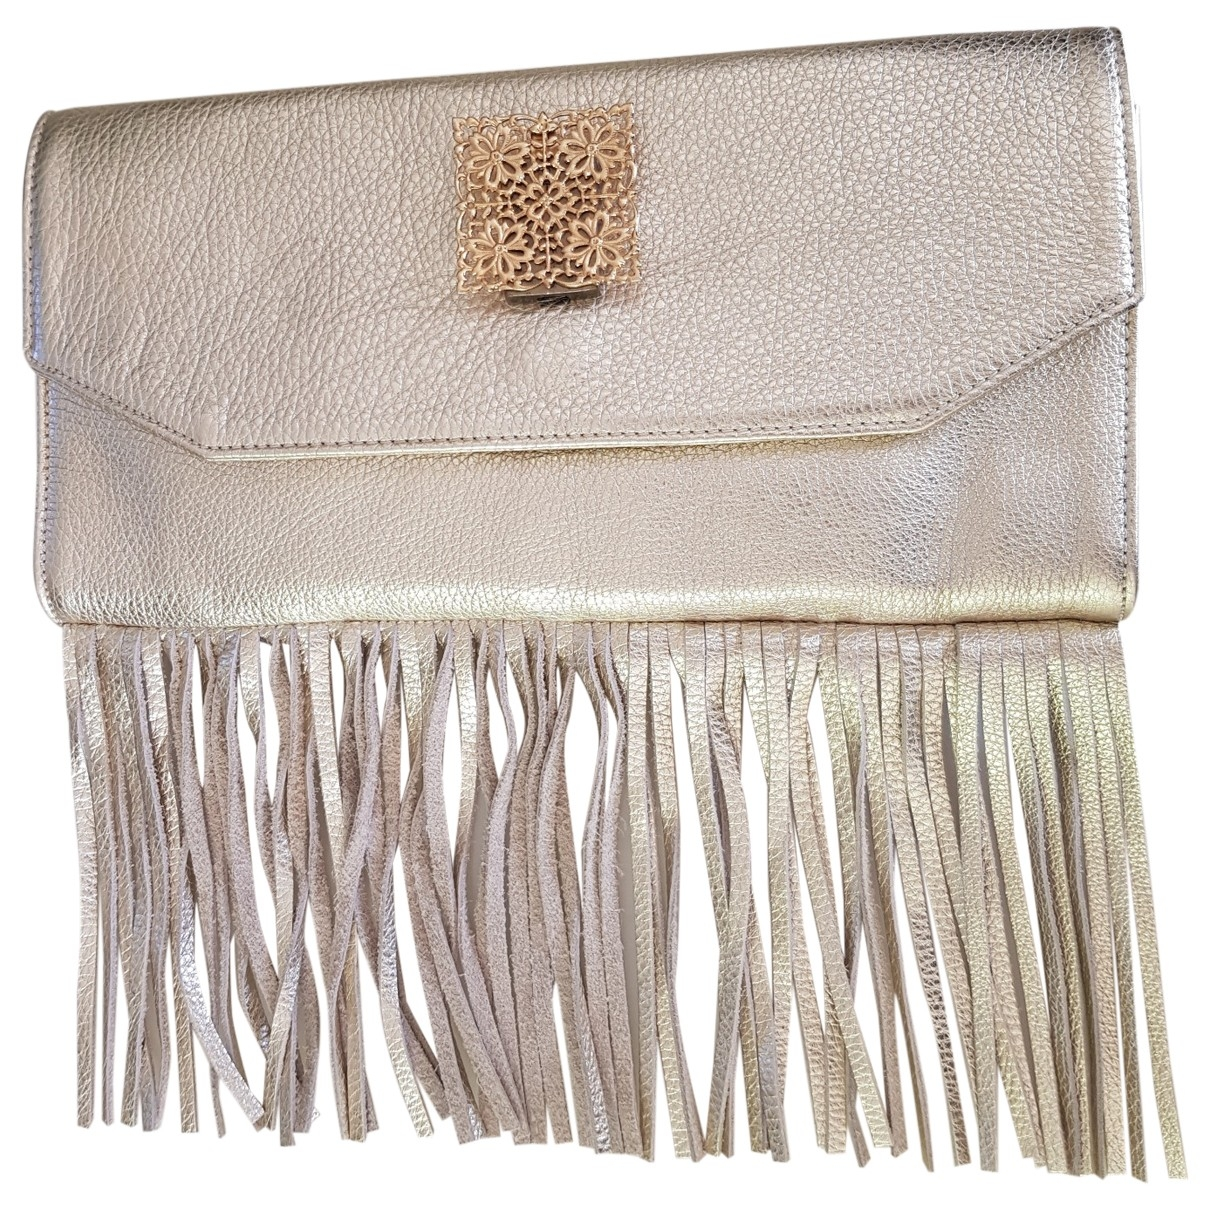 Rose & Josephine \N Gold Leather Clutch bag for Women \N